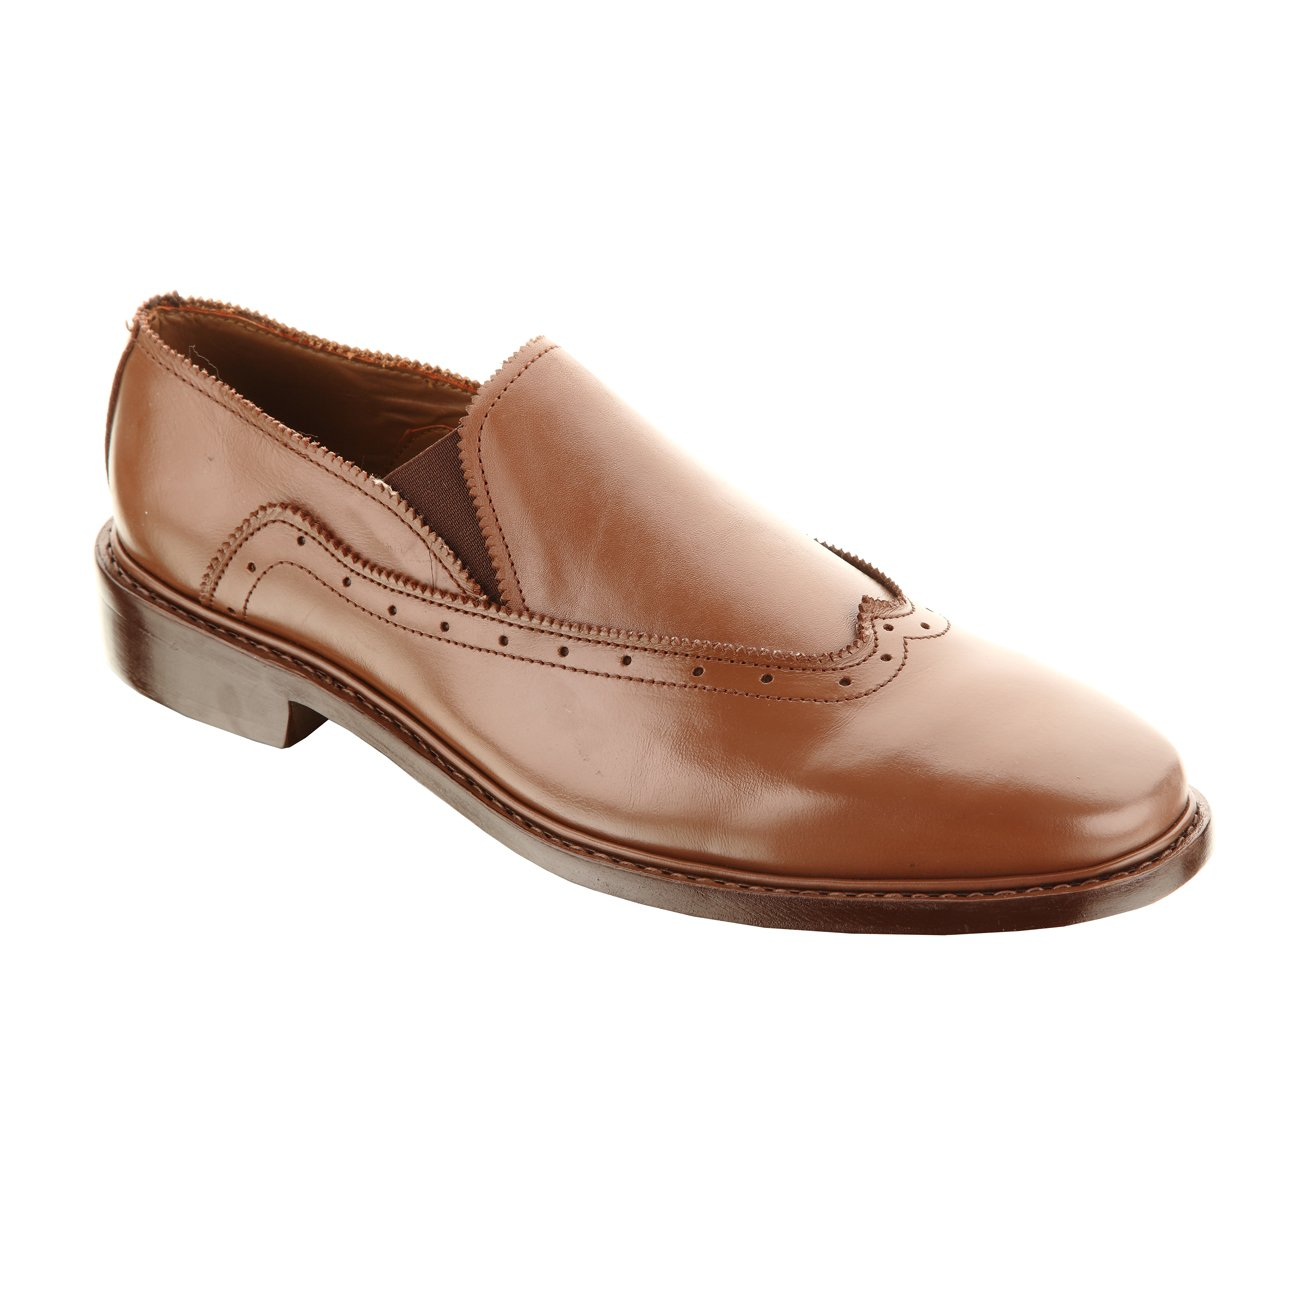 Handmade Damen Frost Chicago Mens Slip On Oxford Leather Shoes, Casual or Formal Wear Dress Shoe, Color Brown, Size US12